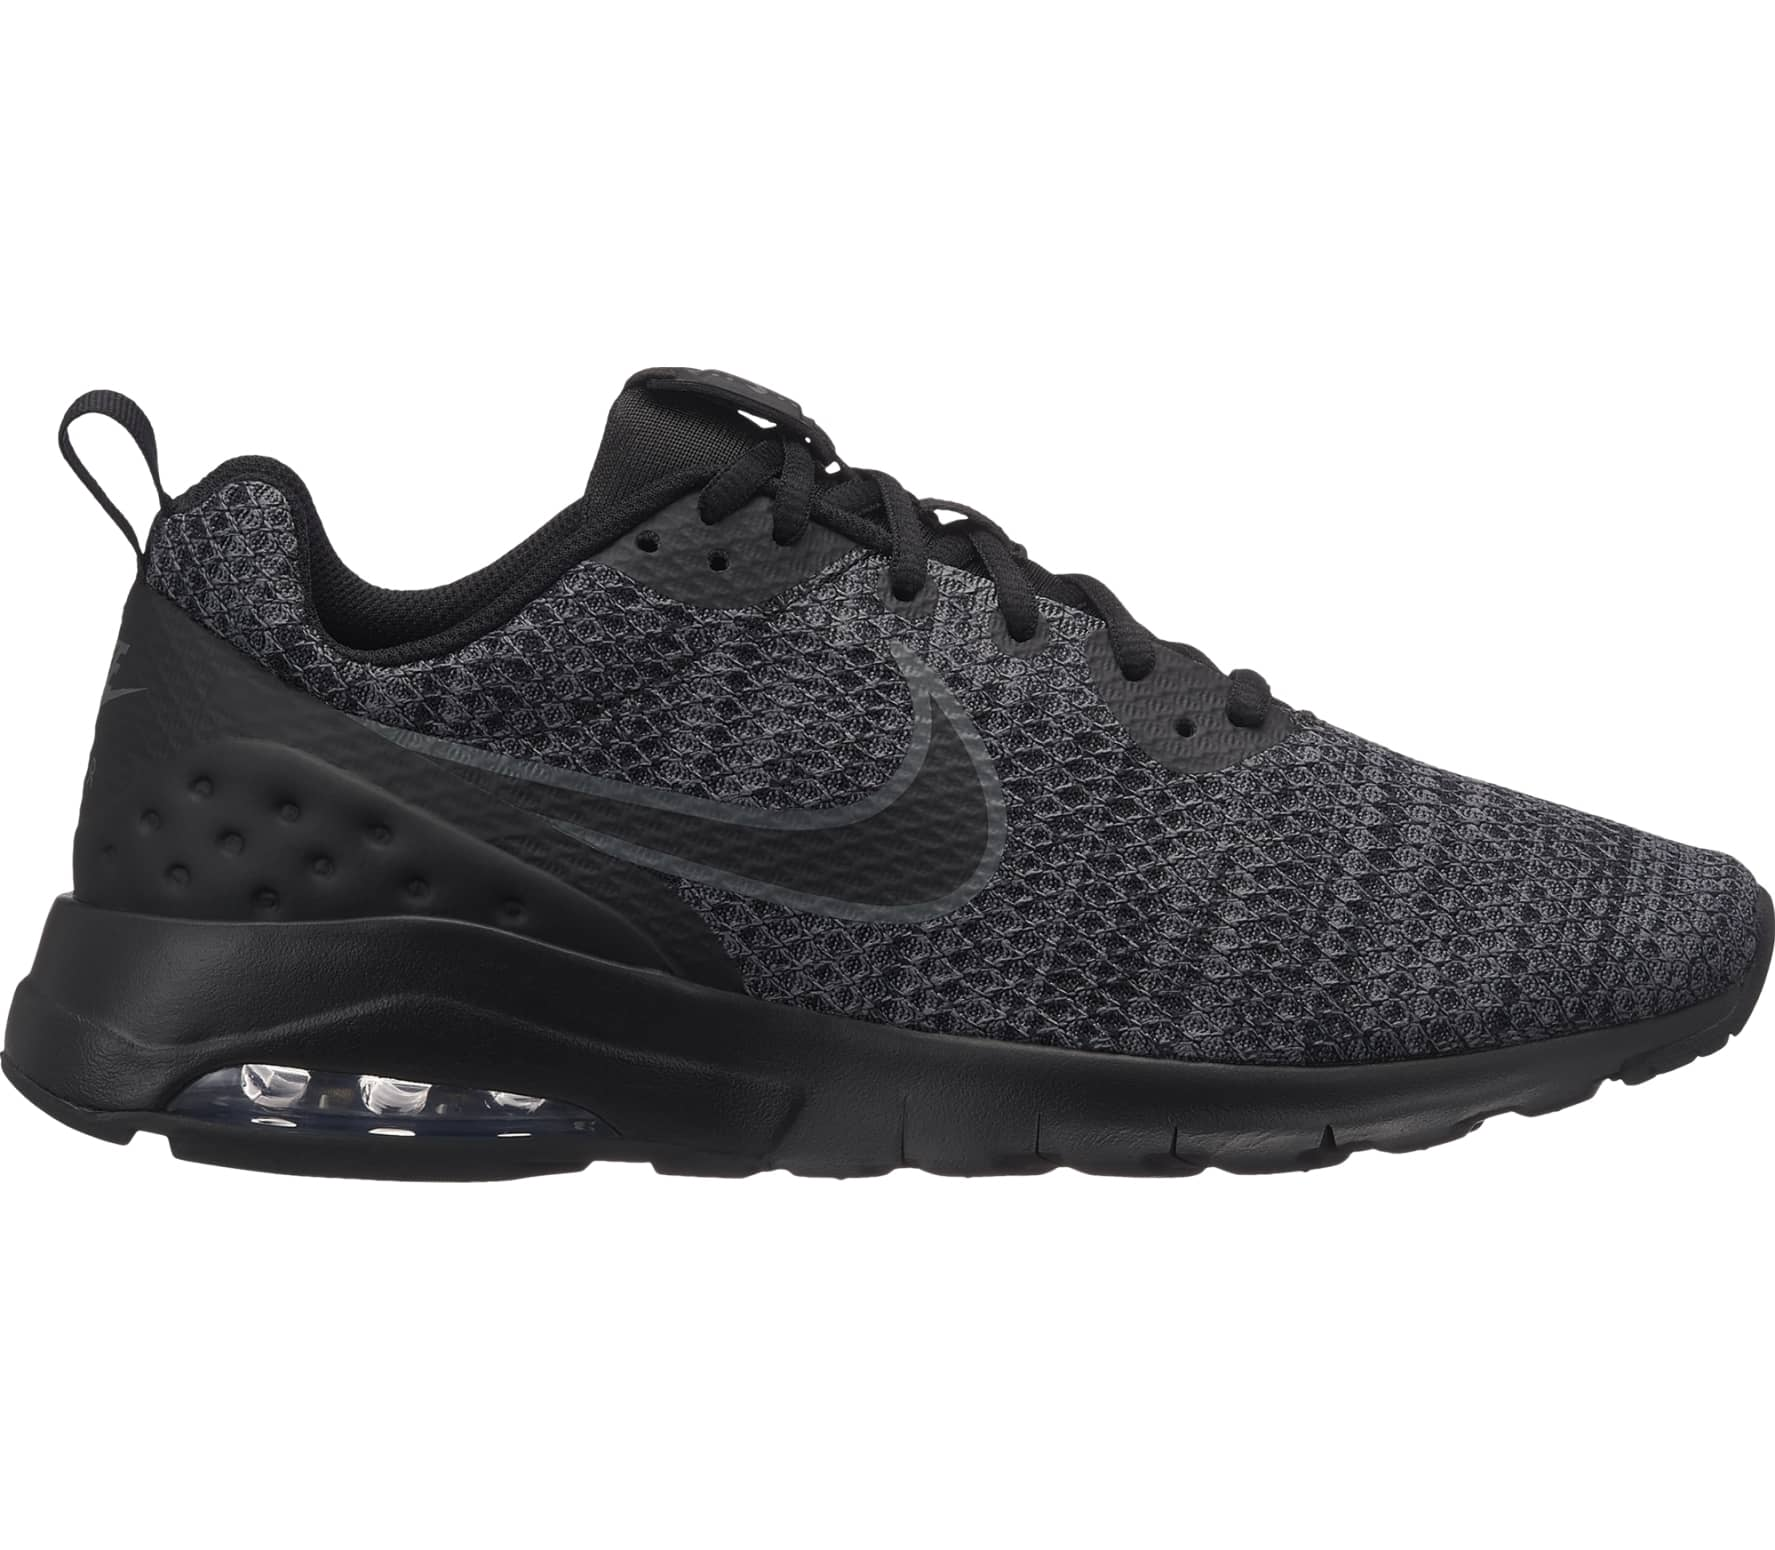 fab33631214317 Nike Sportswear - Air Max Motion LW LE men s sneaker (black) - buy ...